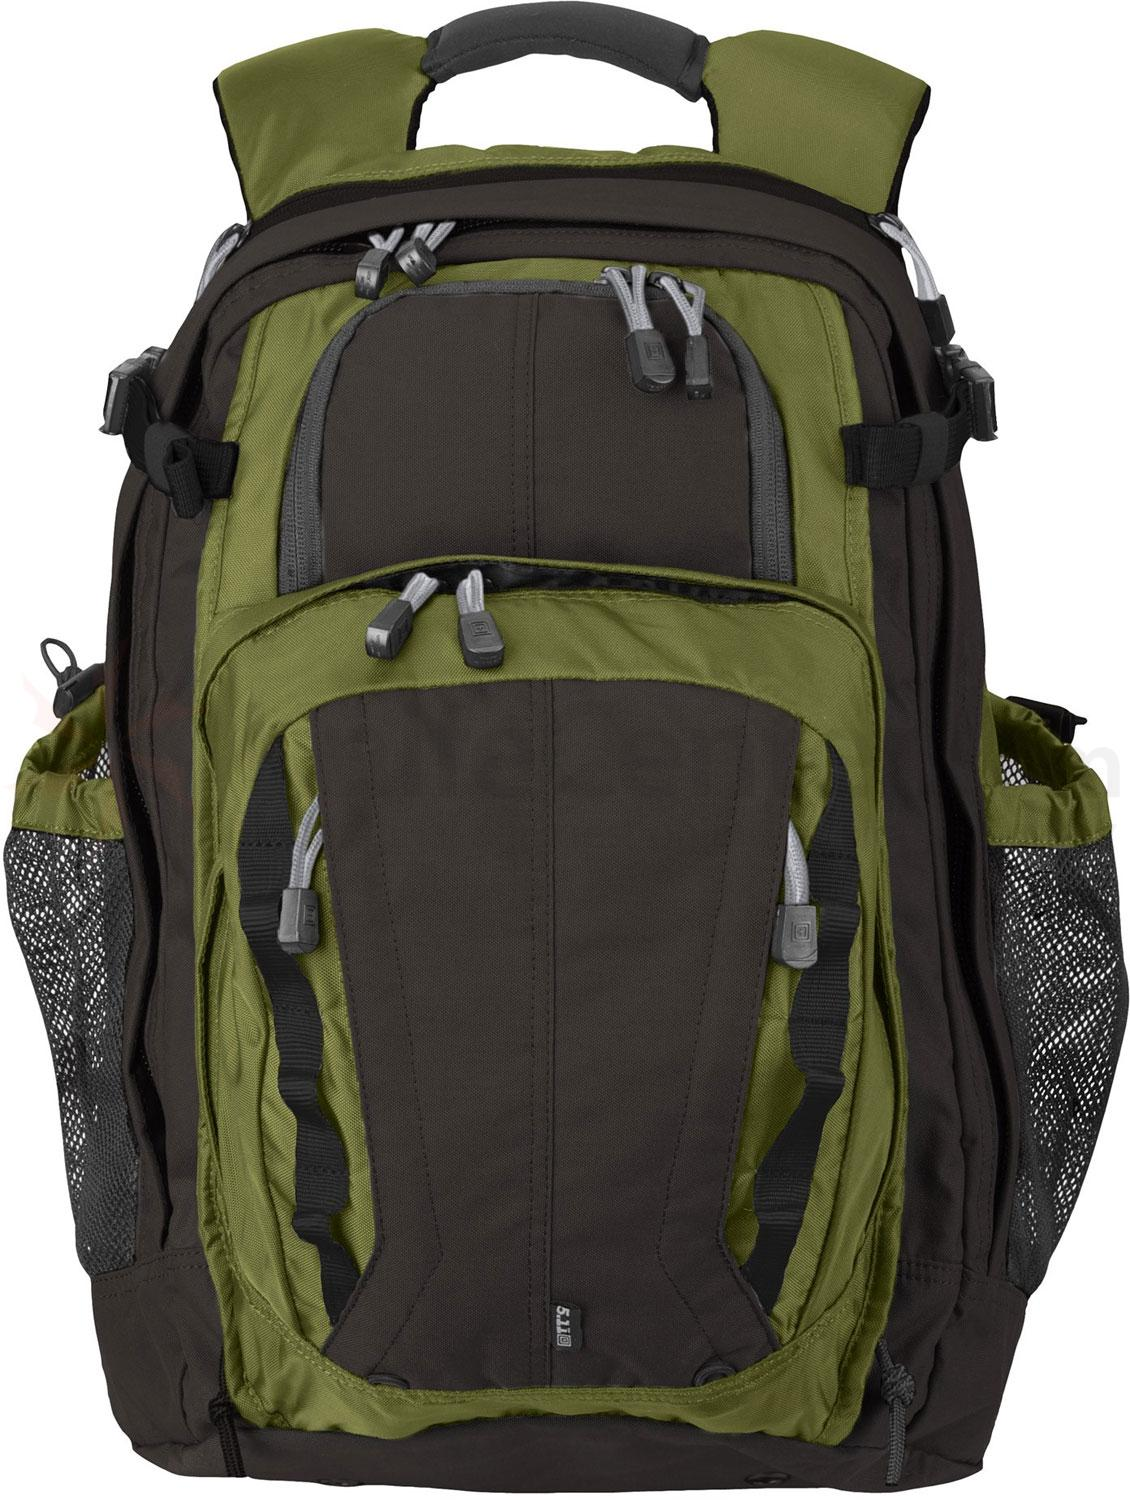 5.11 Tactical Covrt 18 Backpack, Mantis Green/Dark Oak (56961-193)